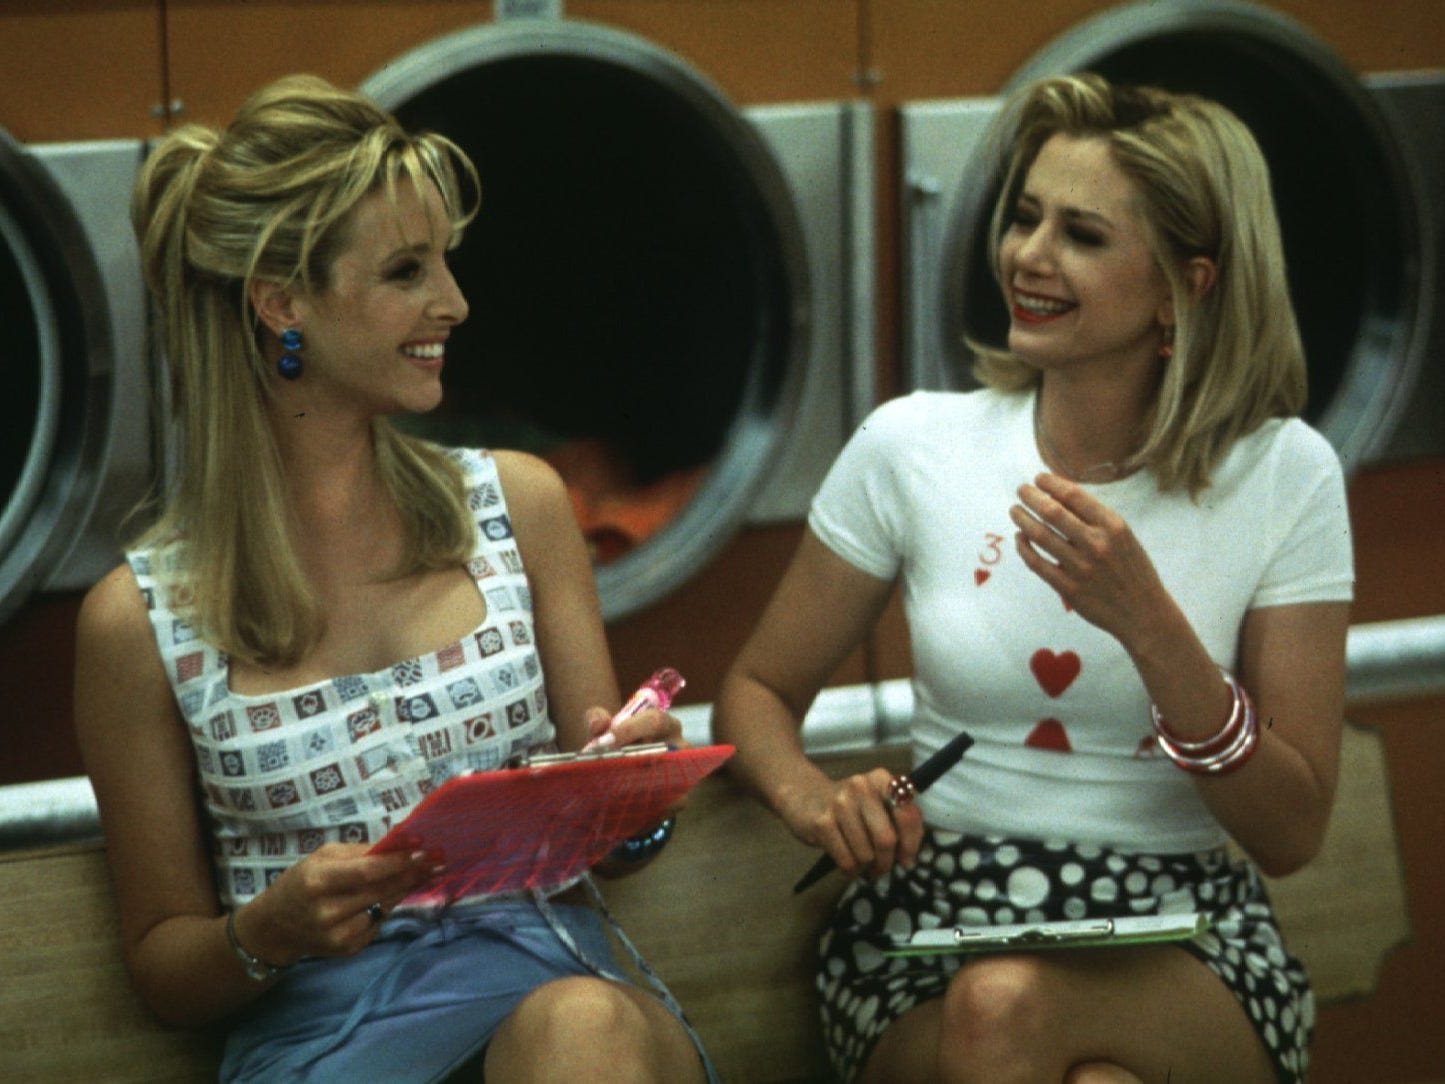 """'Romy & Michele's High School Reunion' (1997): Before grabbing your """"business woman's special"""" at some sleepy roadsidediner, pay close attention to Romy and Michele (Mira Sorvino and Lisa Kudrow) during their high school days at Tucson's (fictional) Sagebrush High. With distant green vistas looming in the background and not a cactus in sight, it's clear this is actually Valencia High School in Santa Clarita, California."""